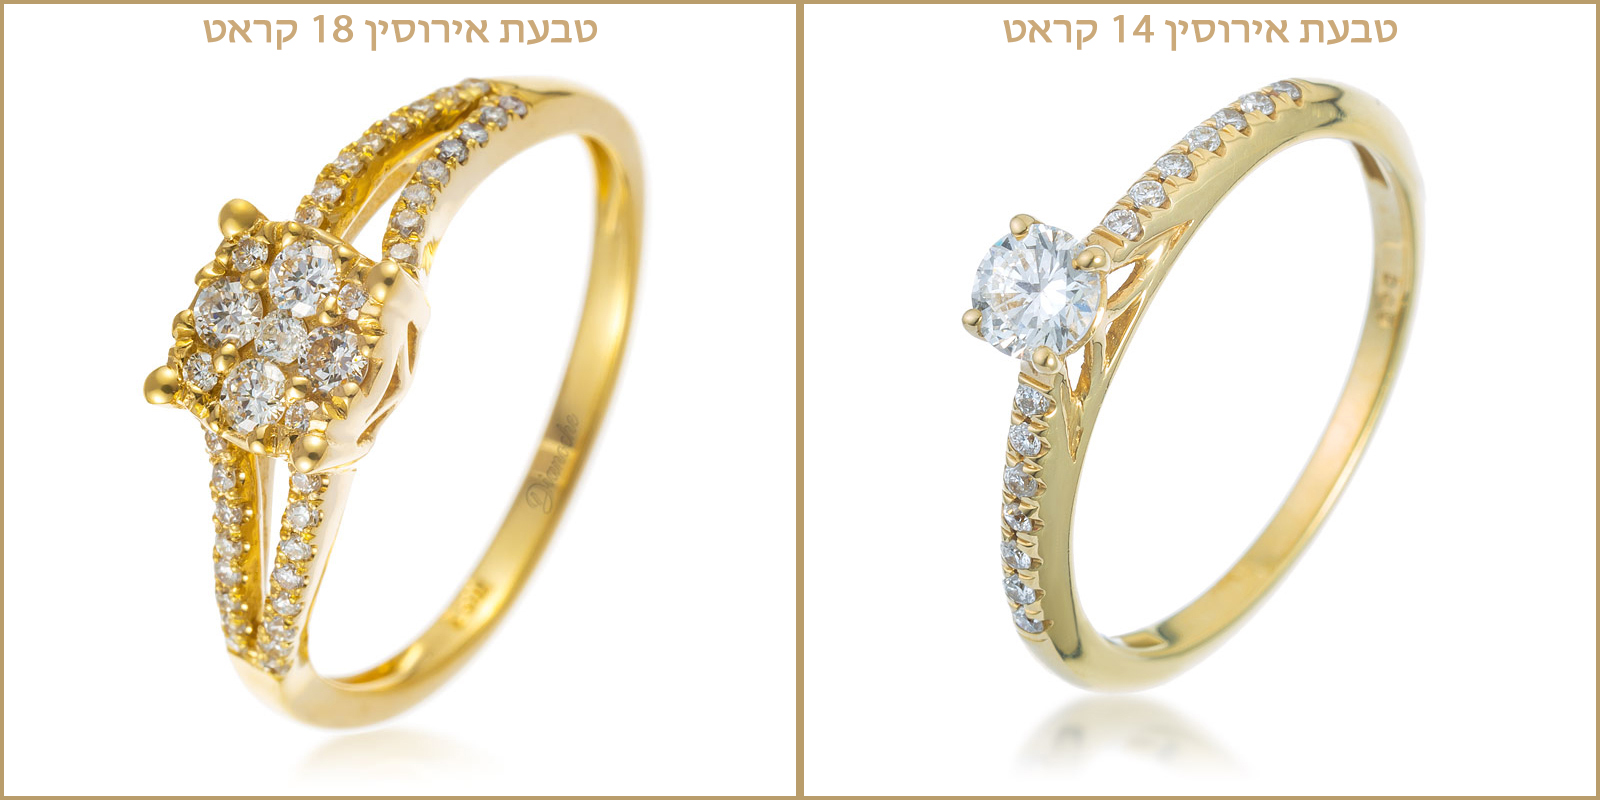 18K vs. 14K gold rings difference